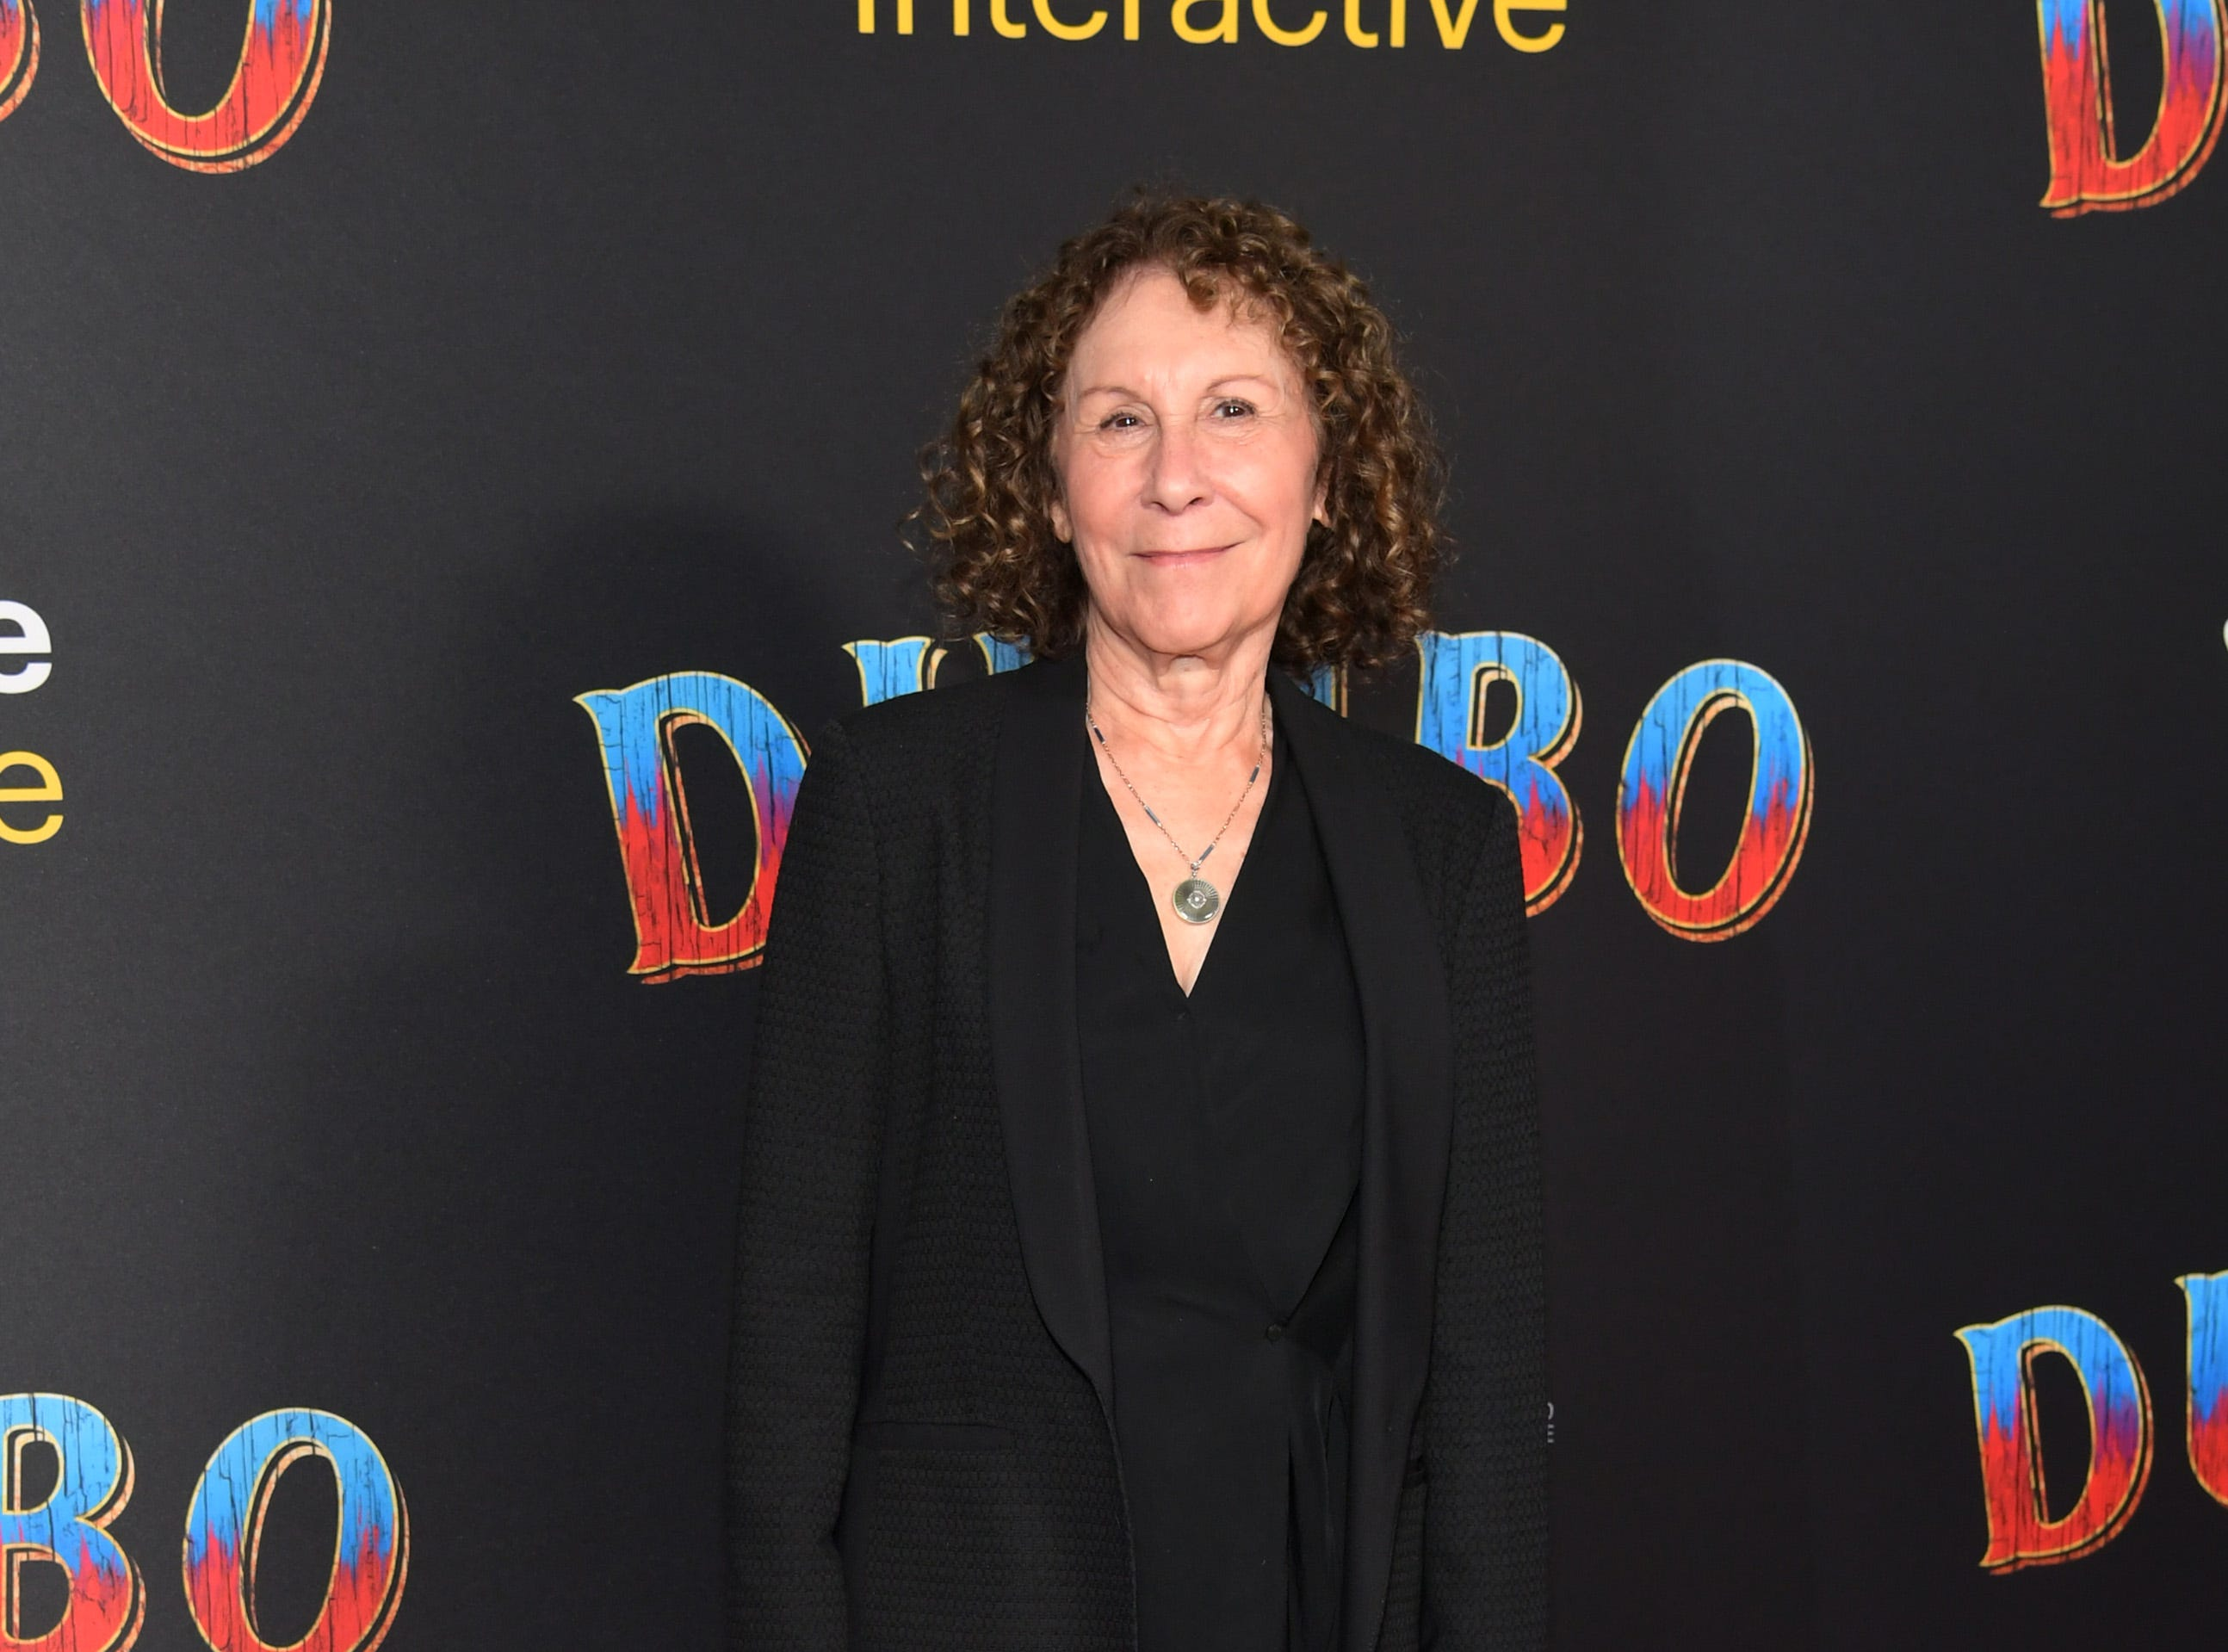 """LOS ANGELES, CALIFORNIA - MARCH 11: Rhea Perlman attends the premiere of Disney's """"Dumbo"""" at El Capitan Theatre on March 11, 2019 in Los Angeles, California. (Photo by Emma McIntyre/Getty Images) ORG XMIT: 775305572 ORIG FILE ID: 1135219056"""